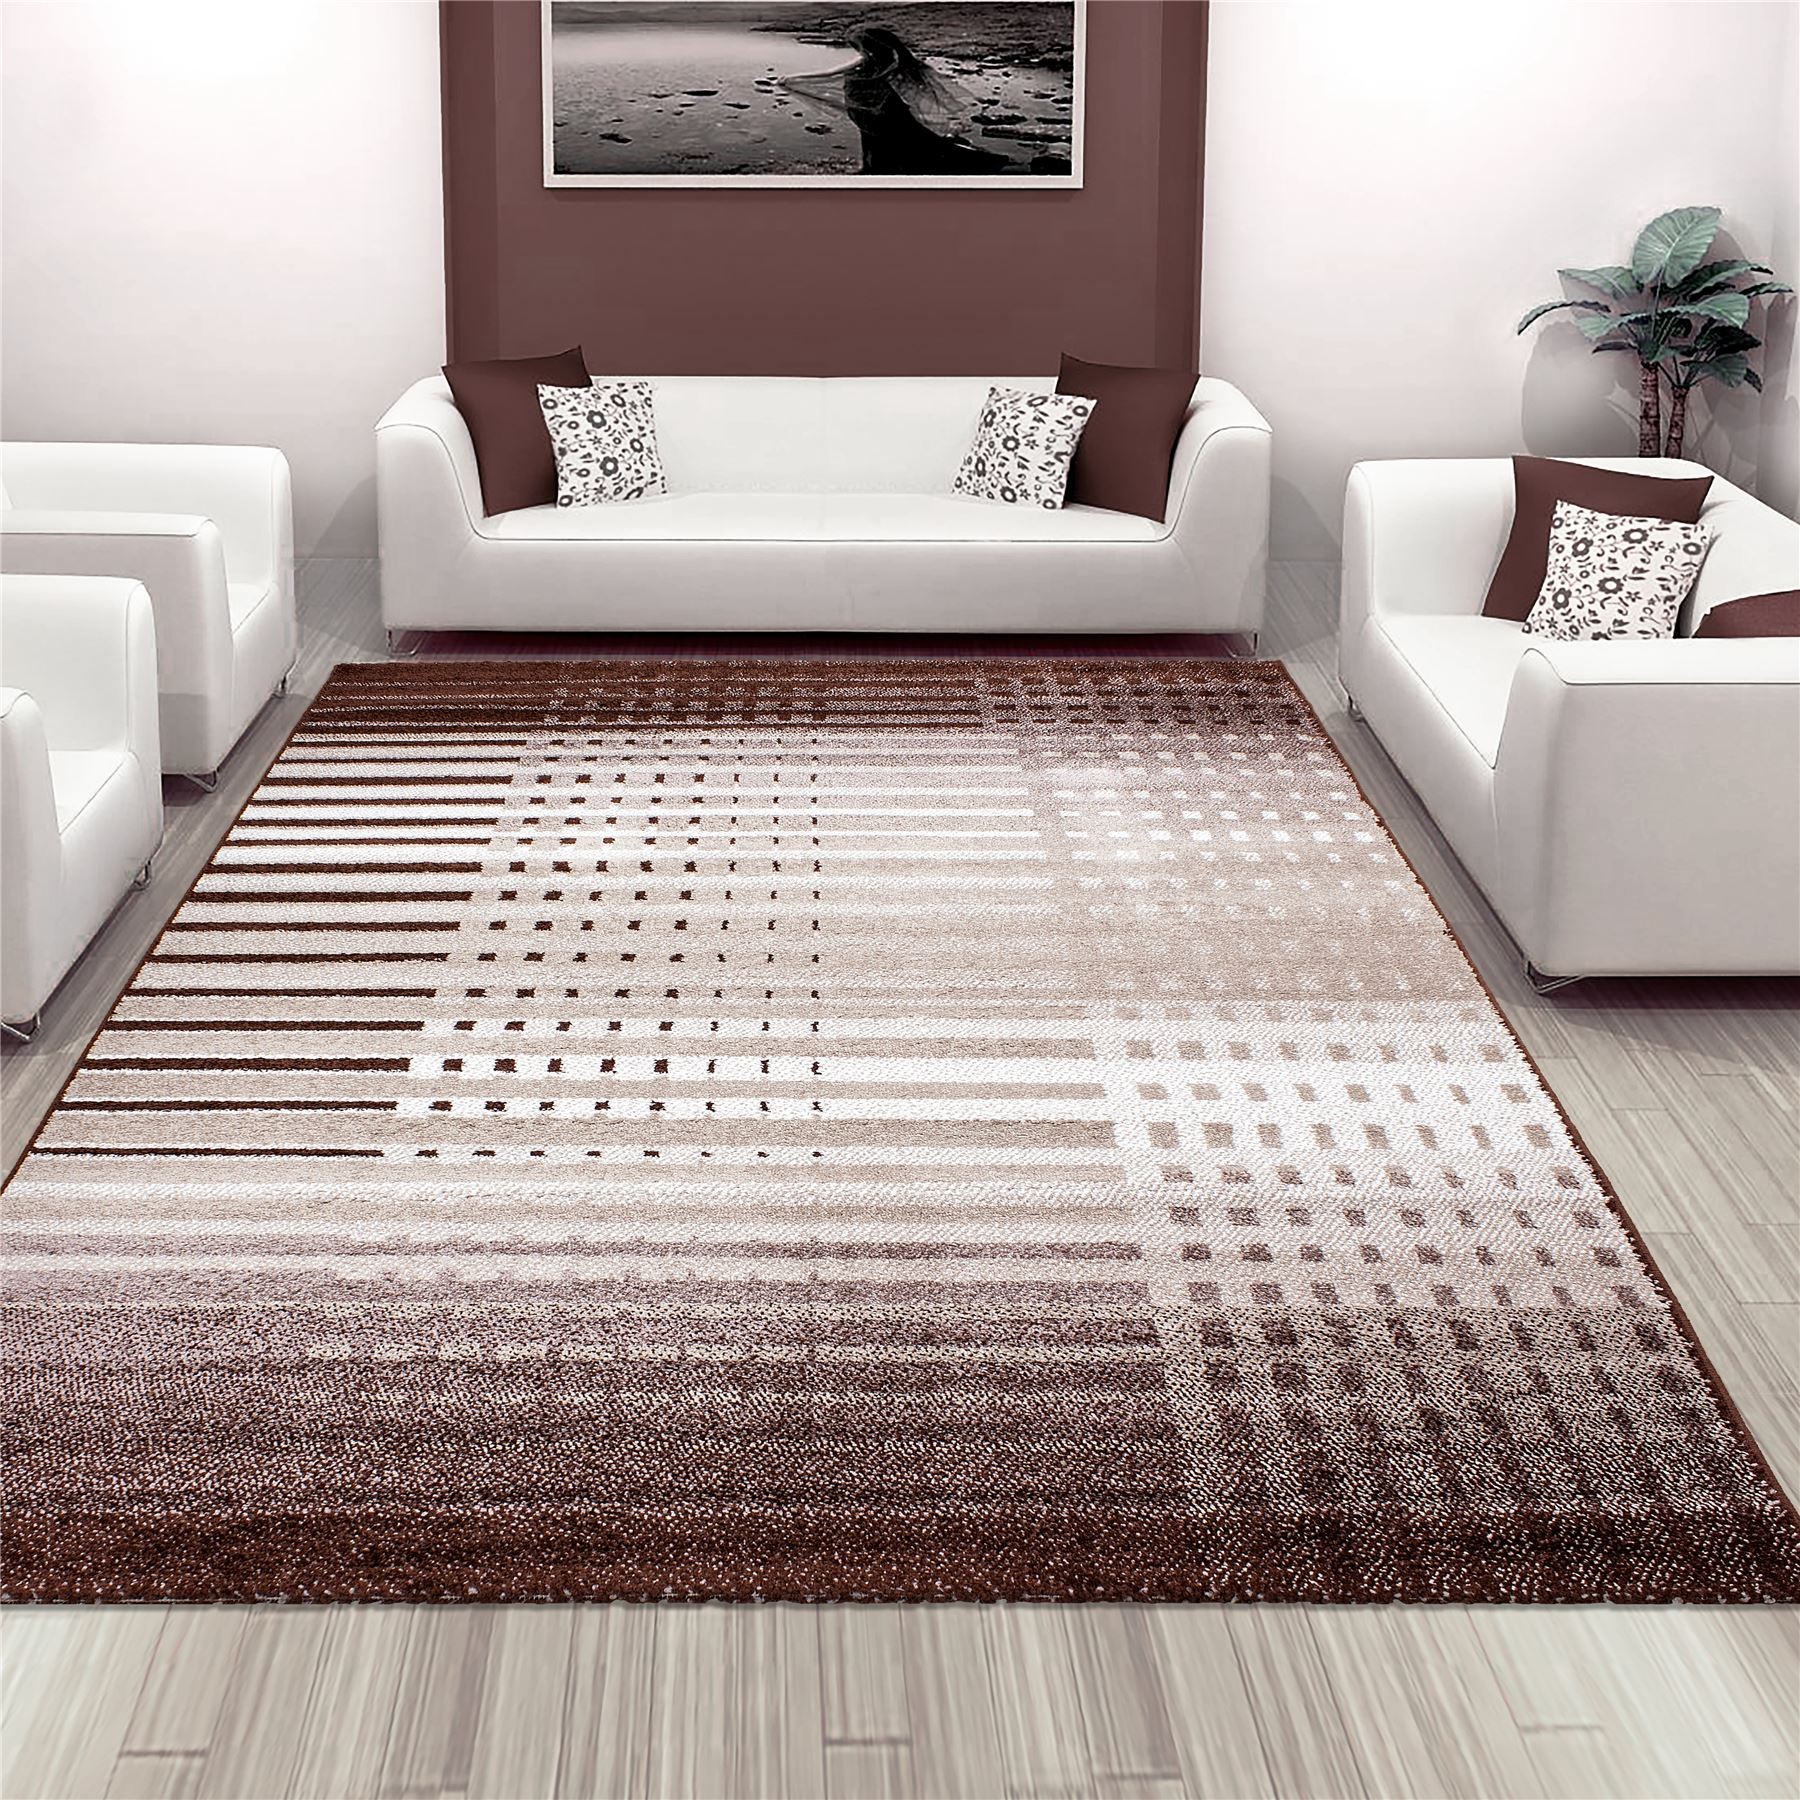 new soft touch home living room stripe lines pattern